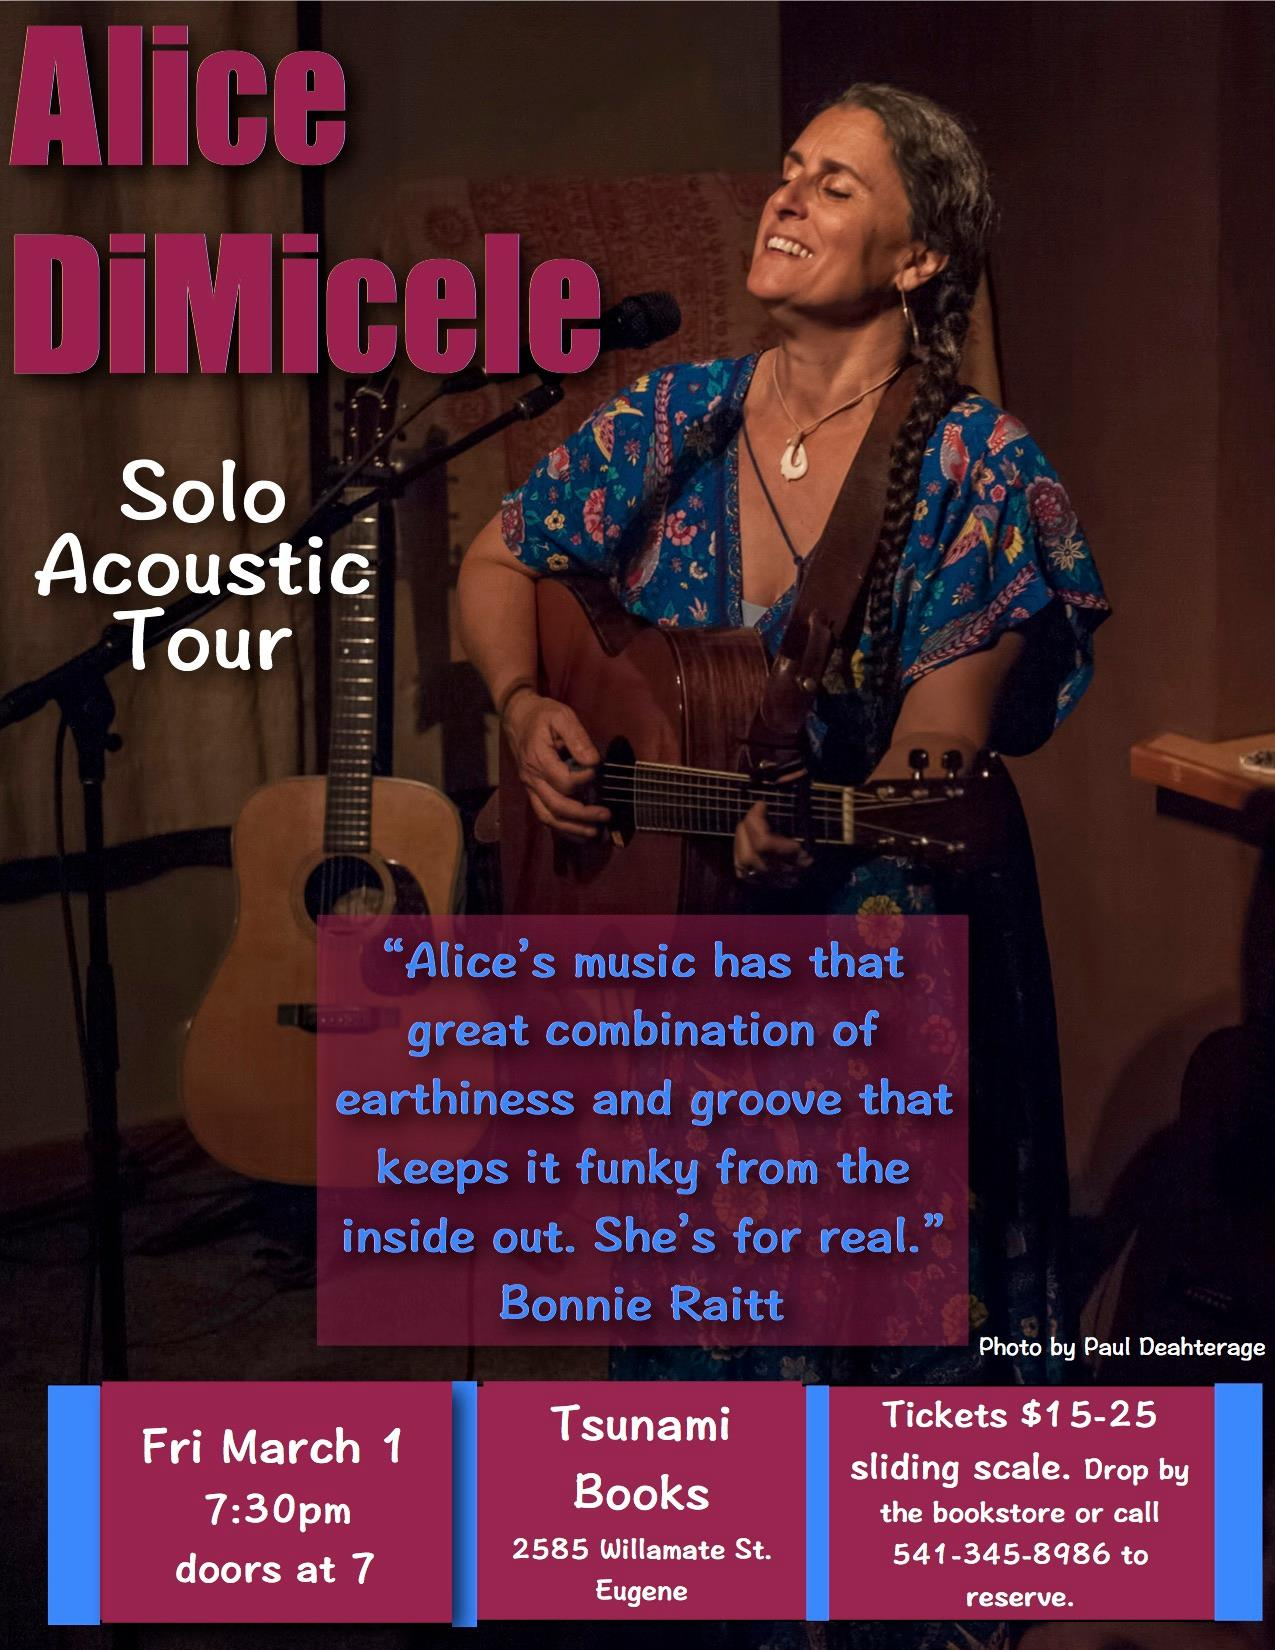 CANCELLED DUE TO SNOW/RESCHEDULED TO FRIDAY MAY 31 Singer/Songwriter